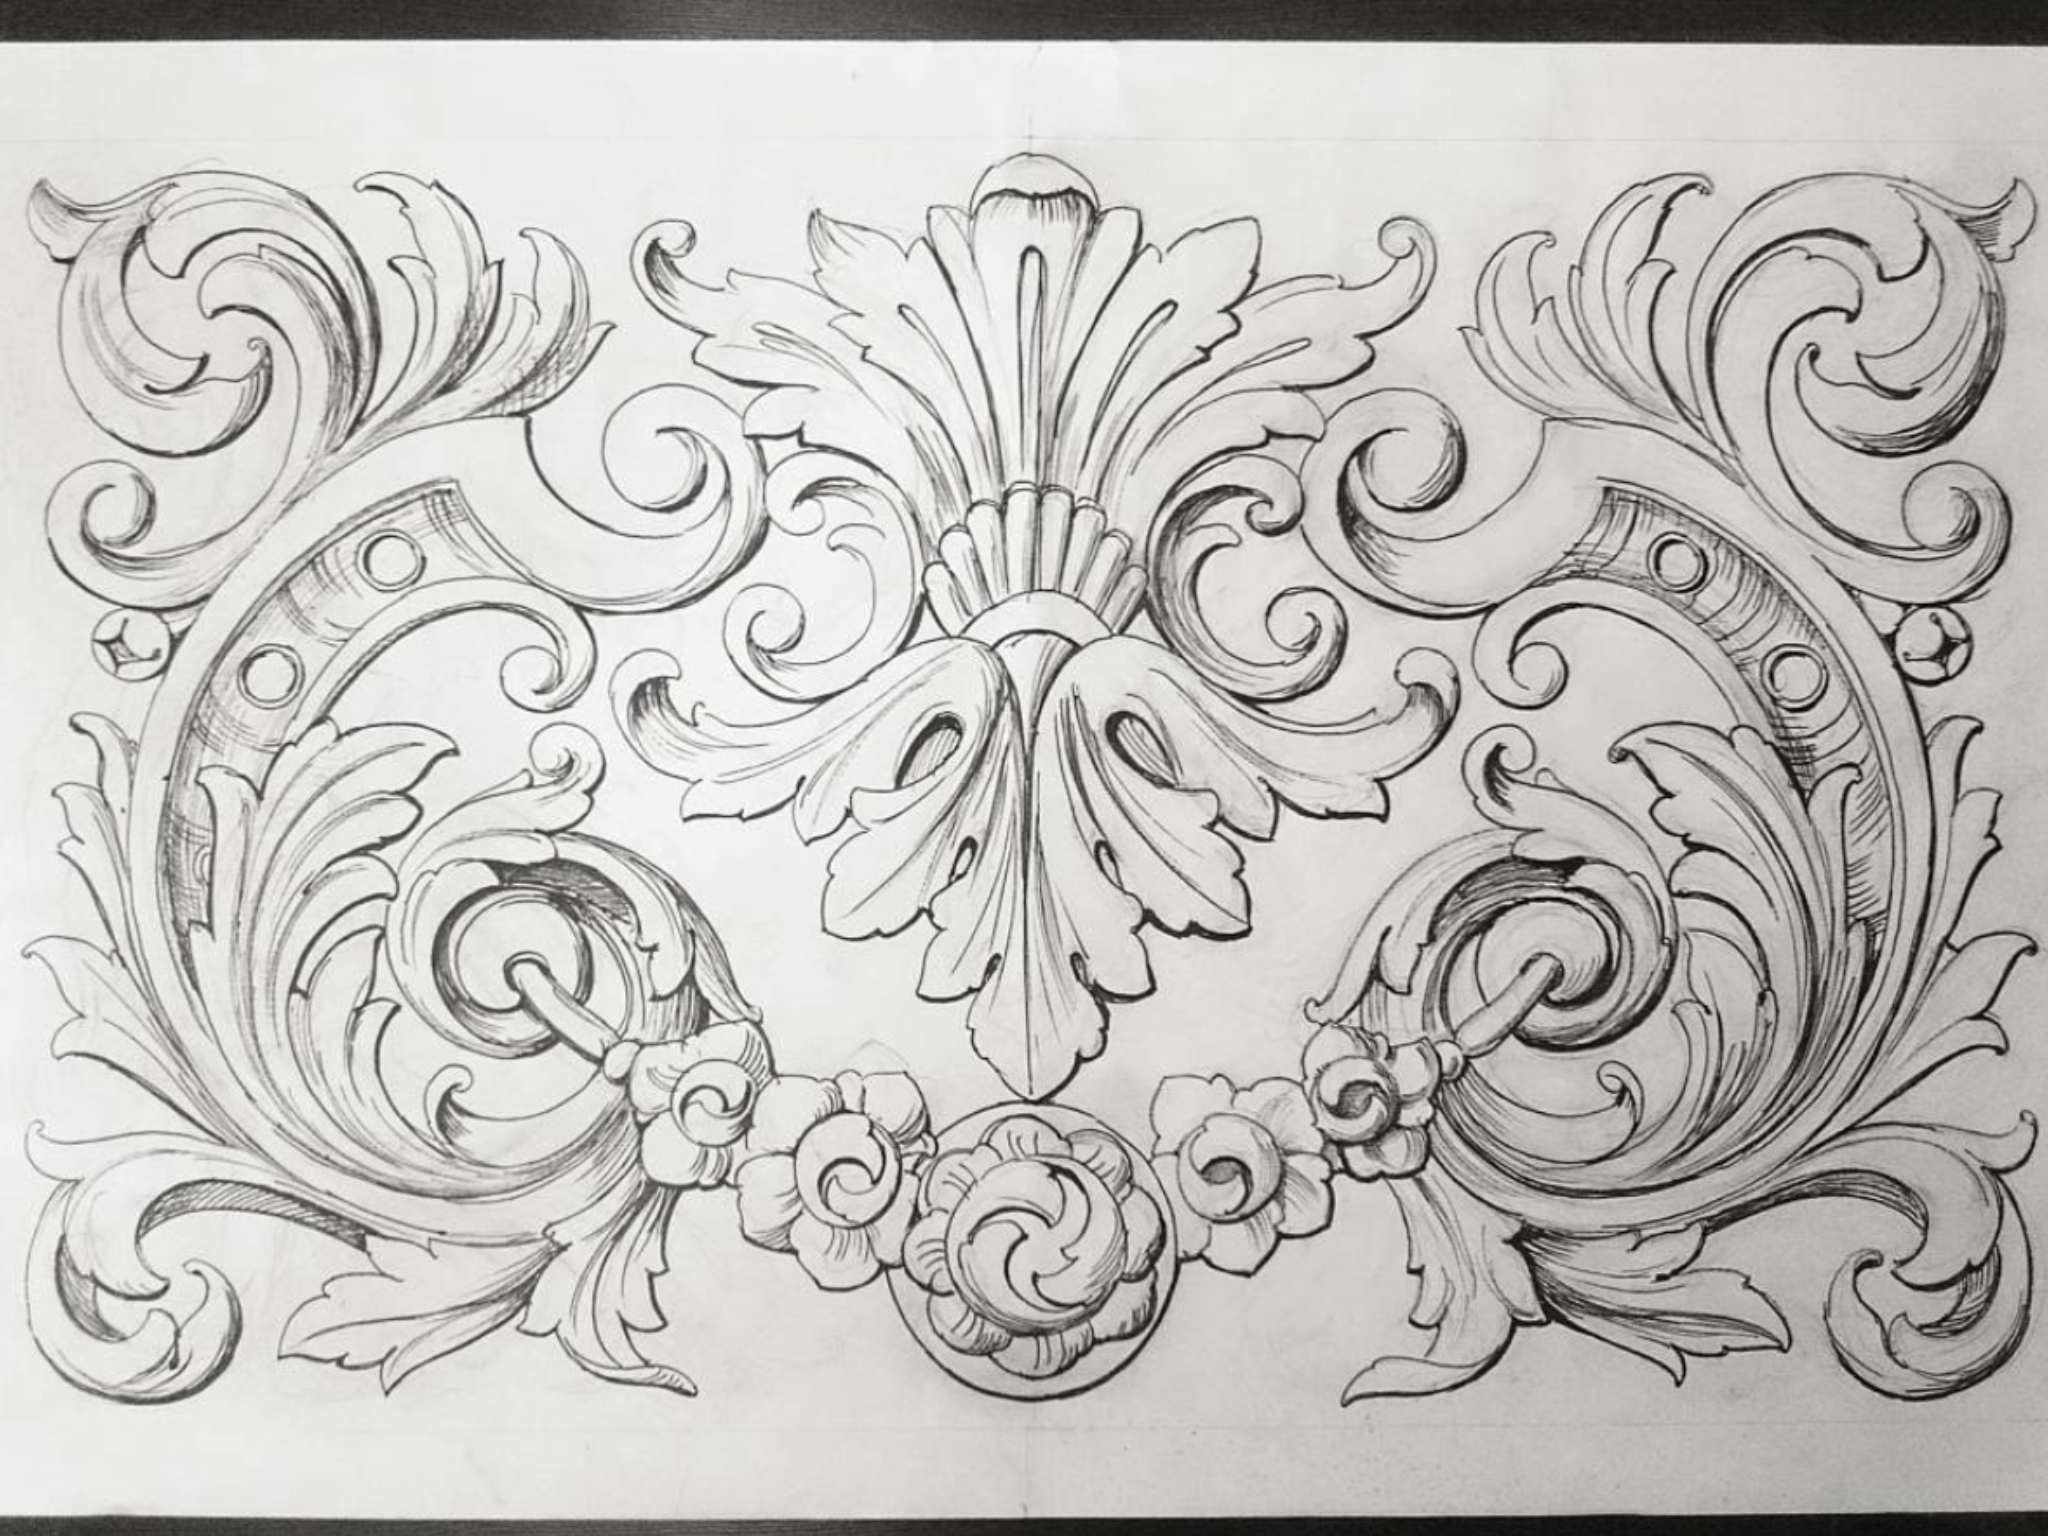 Pin By Kumar R On Ornament Ornament Drawing Wood Carving Patterns Carving Designs